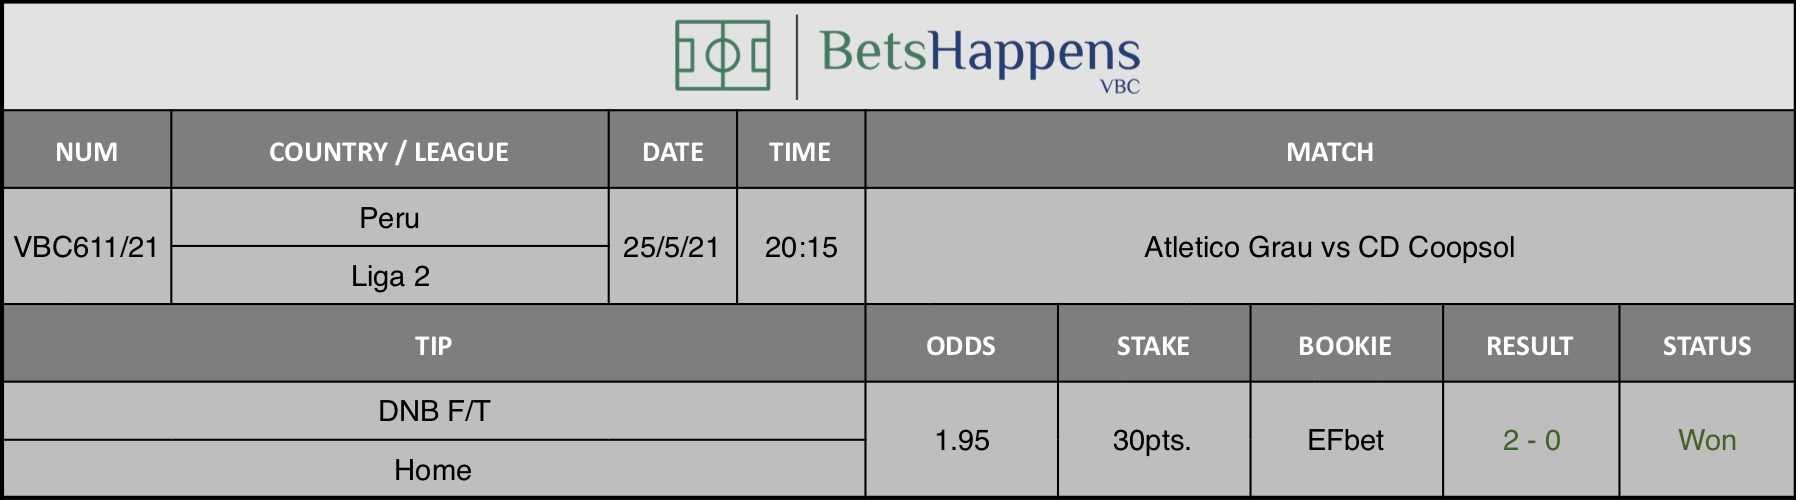 Results of our tip for the Atletico Grau vs CD Coopsol match where DNB F/T Home is recommended.